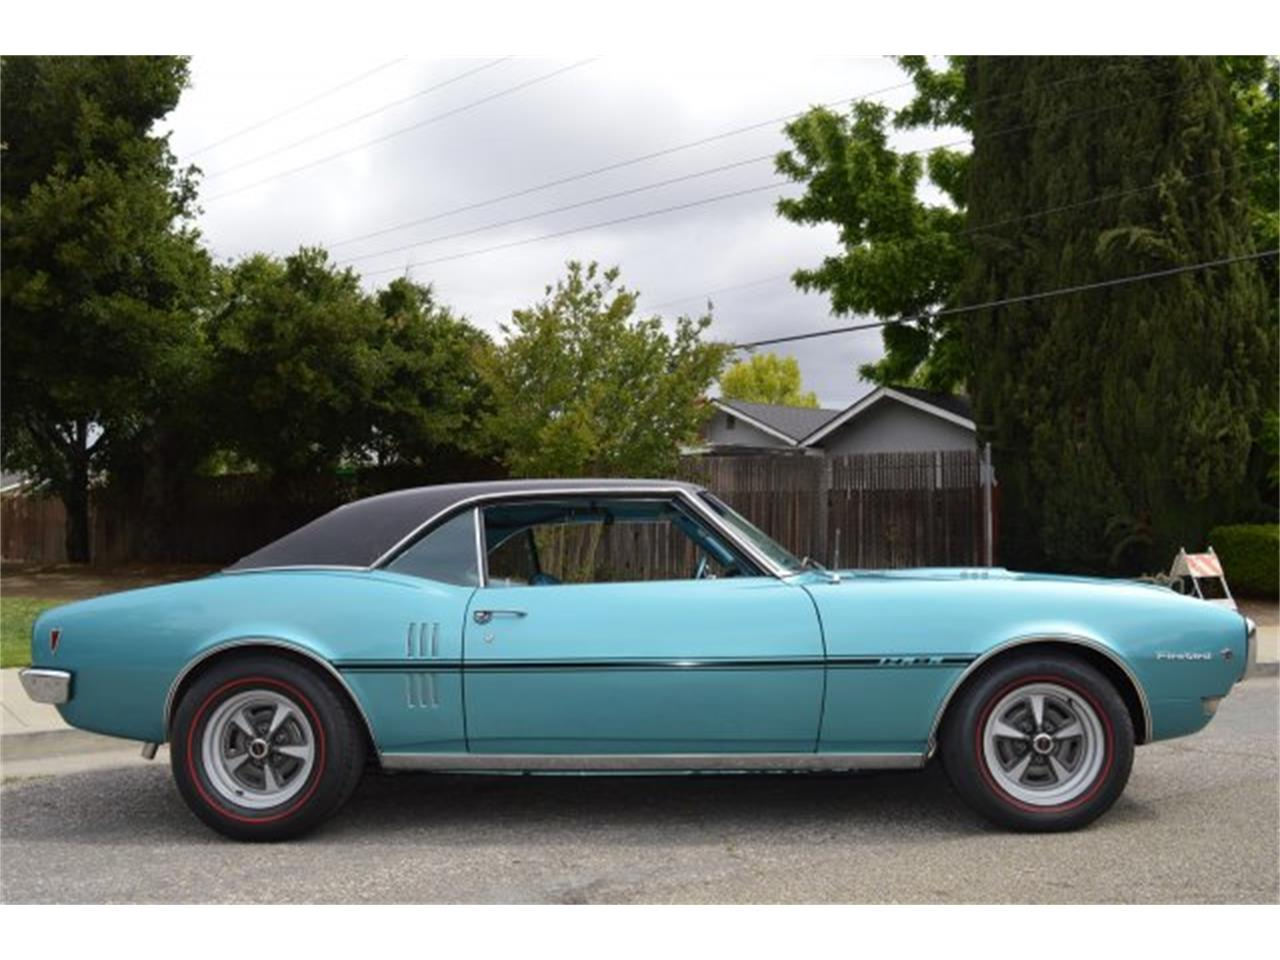 Large Picture of Classic 1968 Pontiac Firebird located in San Jose California Auction Vehicle Offered by American Motors Customs and Classics - KV9Z